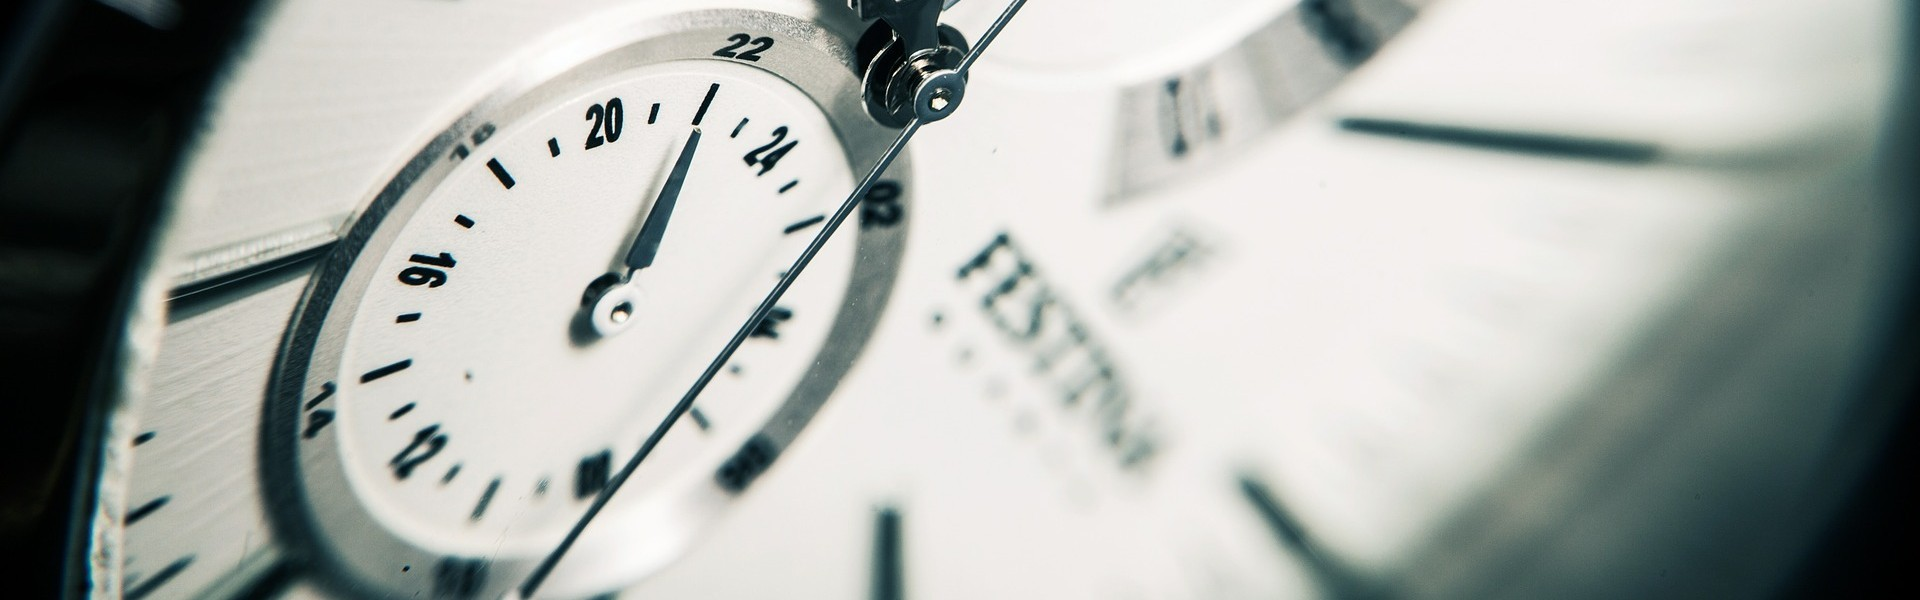 cropped-cropped-clock-407101_1920